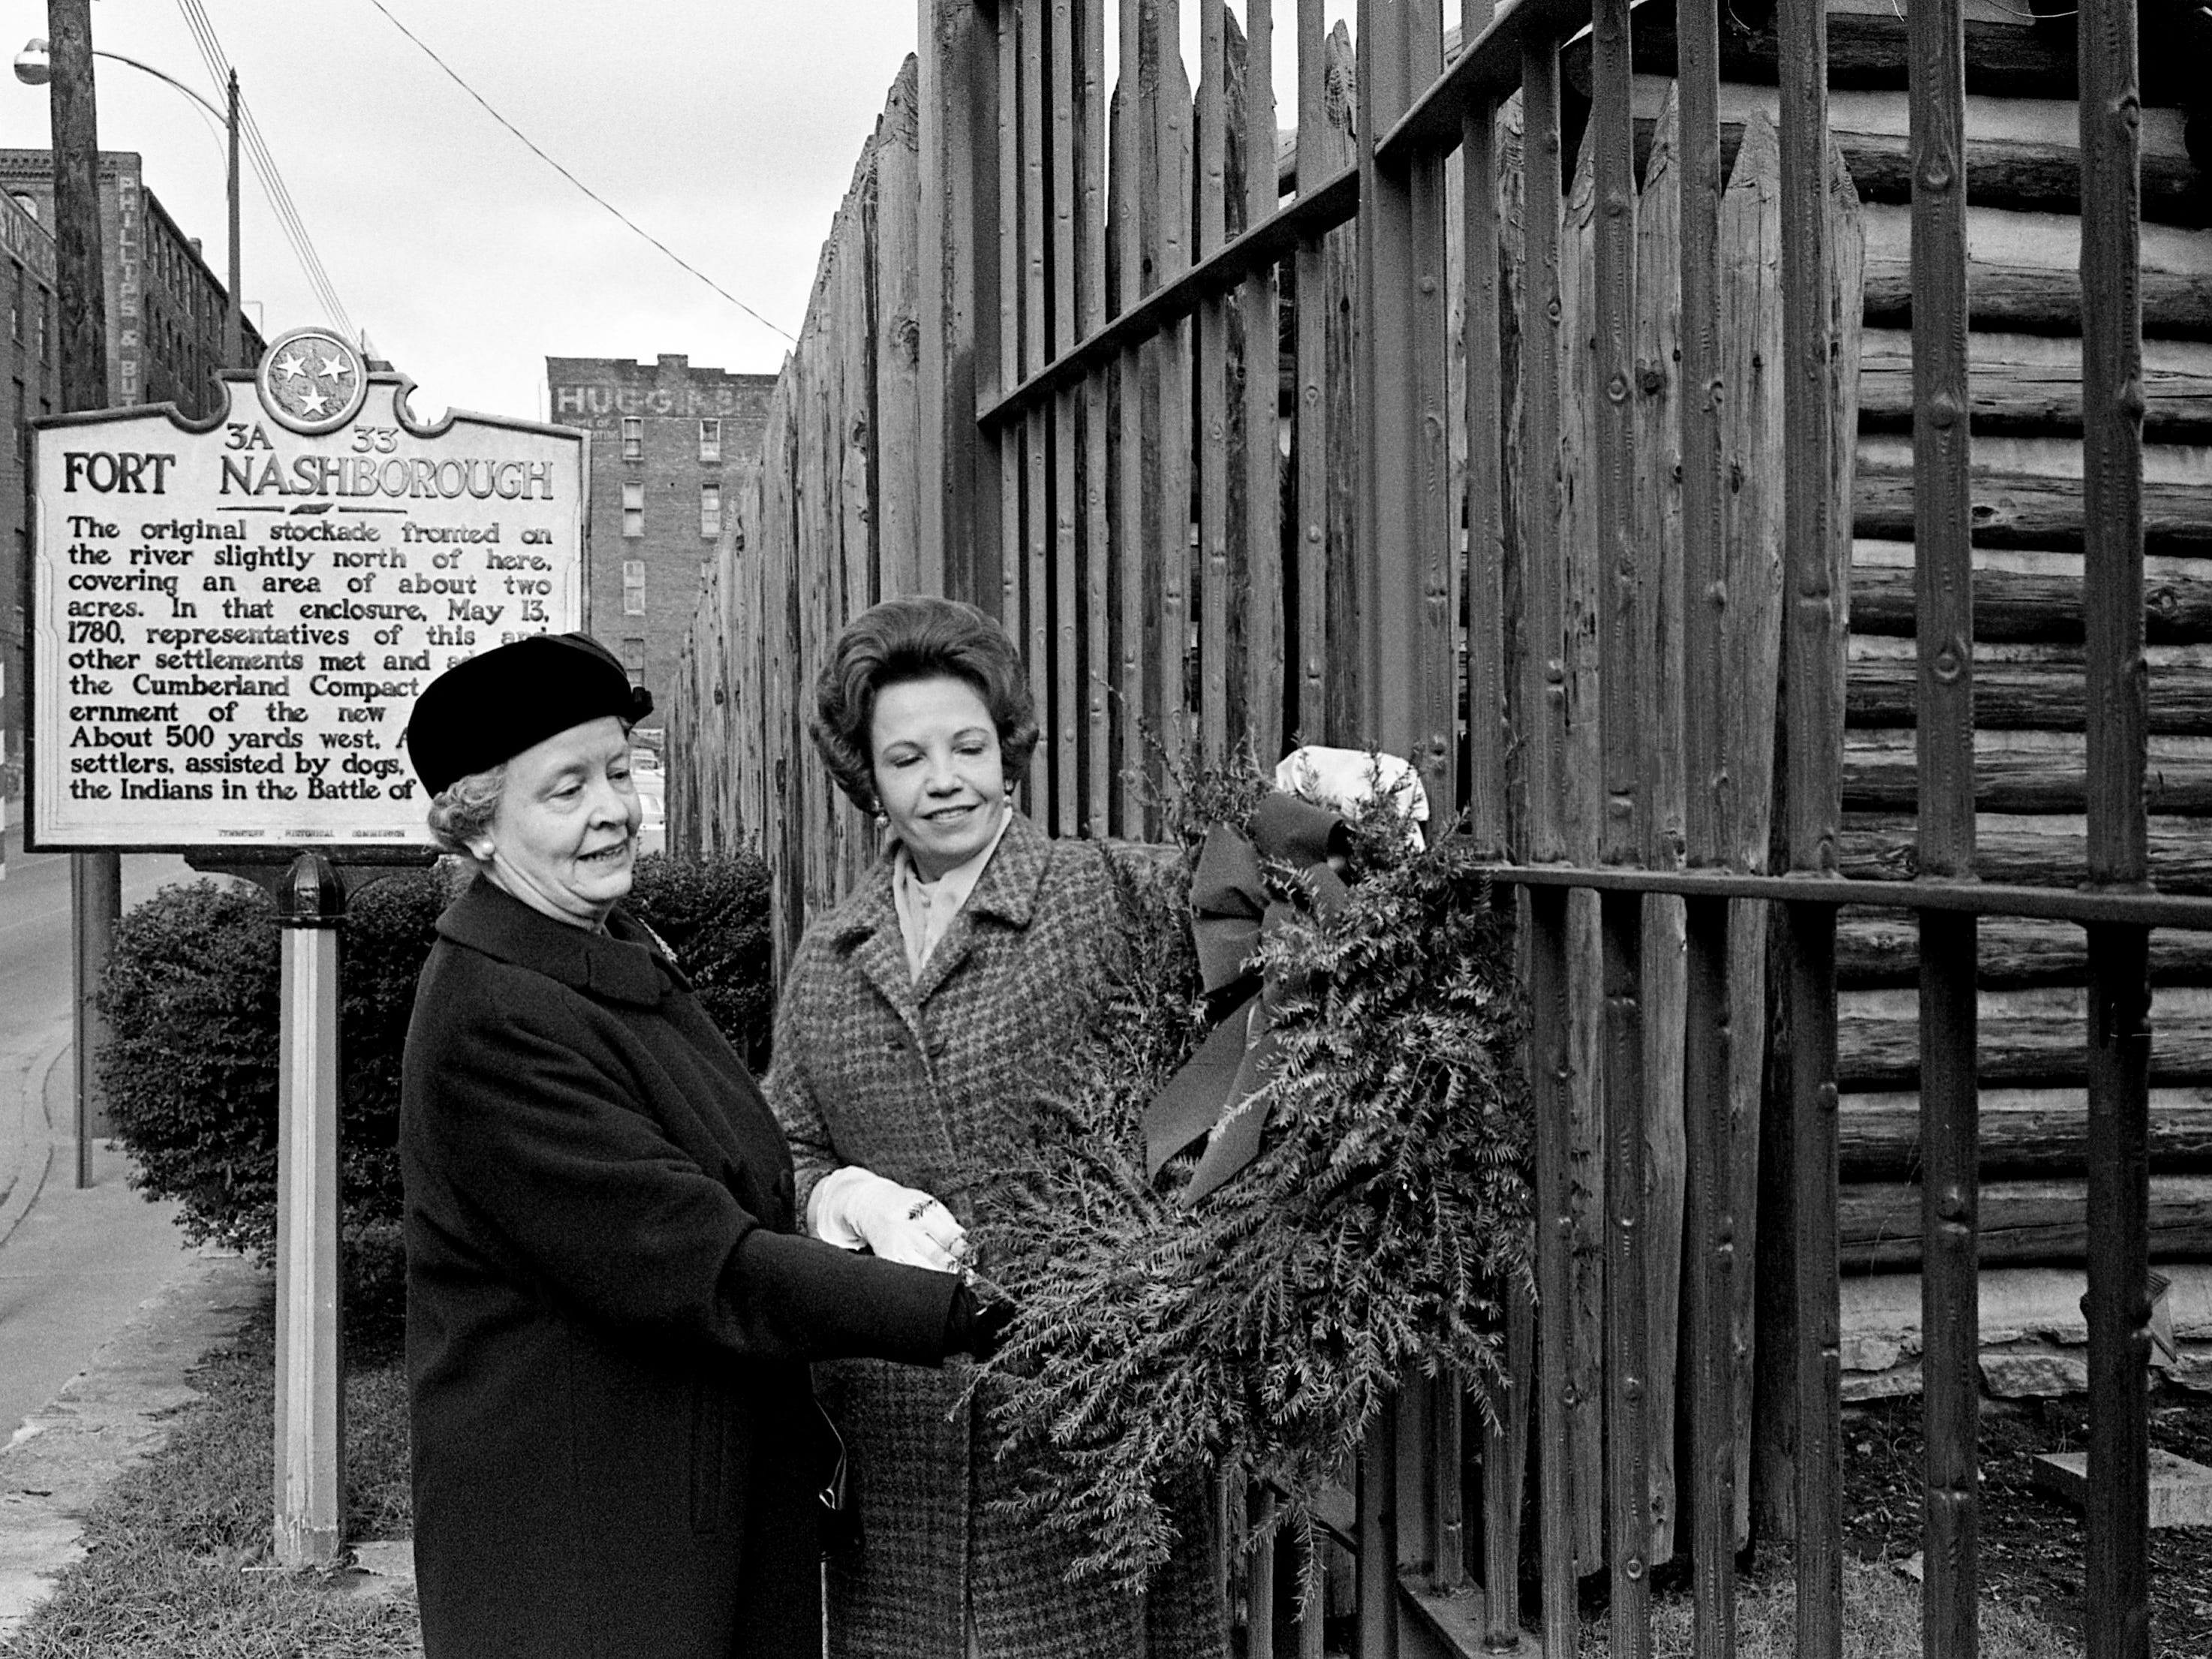 For years, members of the Belle Meade Chapter, DAR, have placed a Christmas wreath on the gates of Fort Nashborough in downtown Nashville. Hanging the wreath this year on Dec. 14, 1968 are Miss Madeline Knight, left, and Mrs. Jean Lakoff.